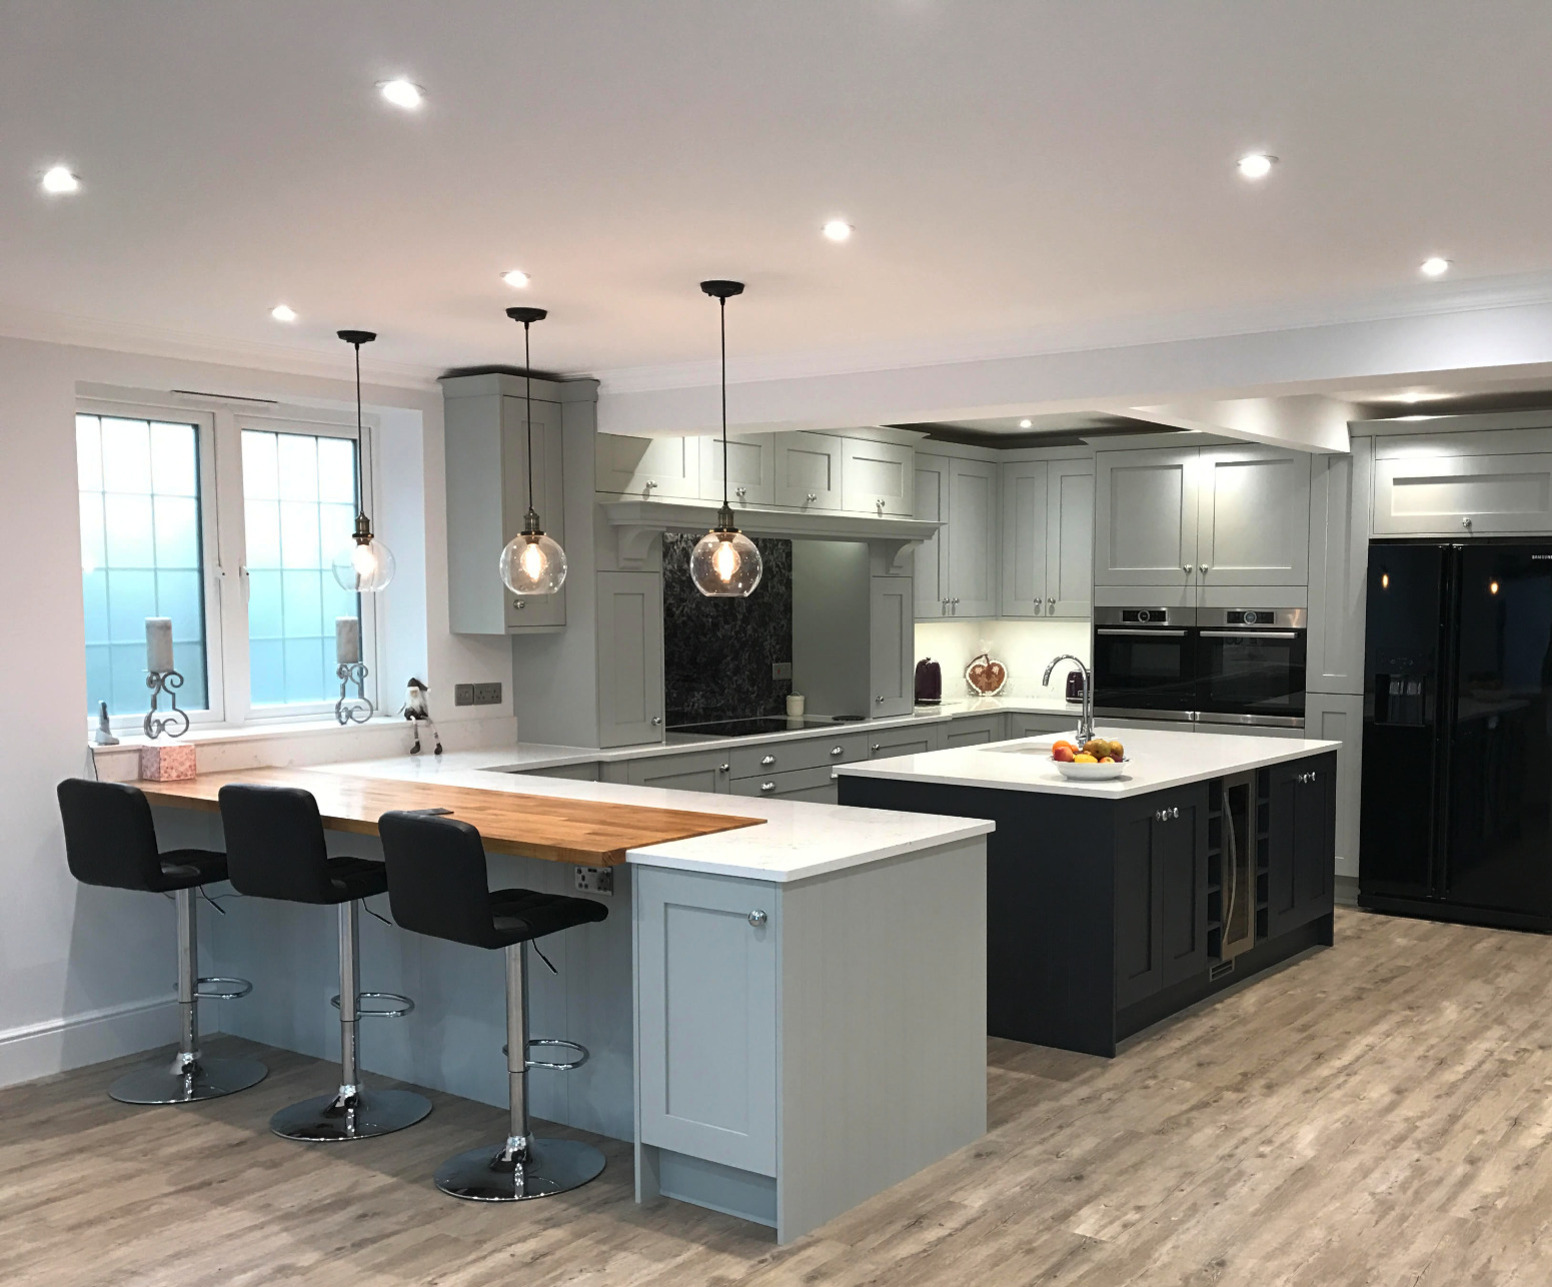 Creative design kitchens and bathrooms based in fleet